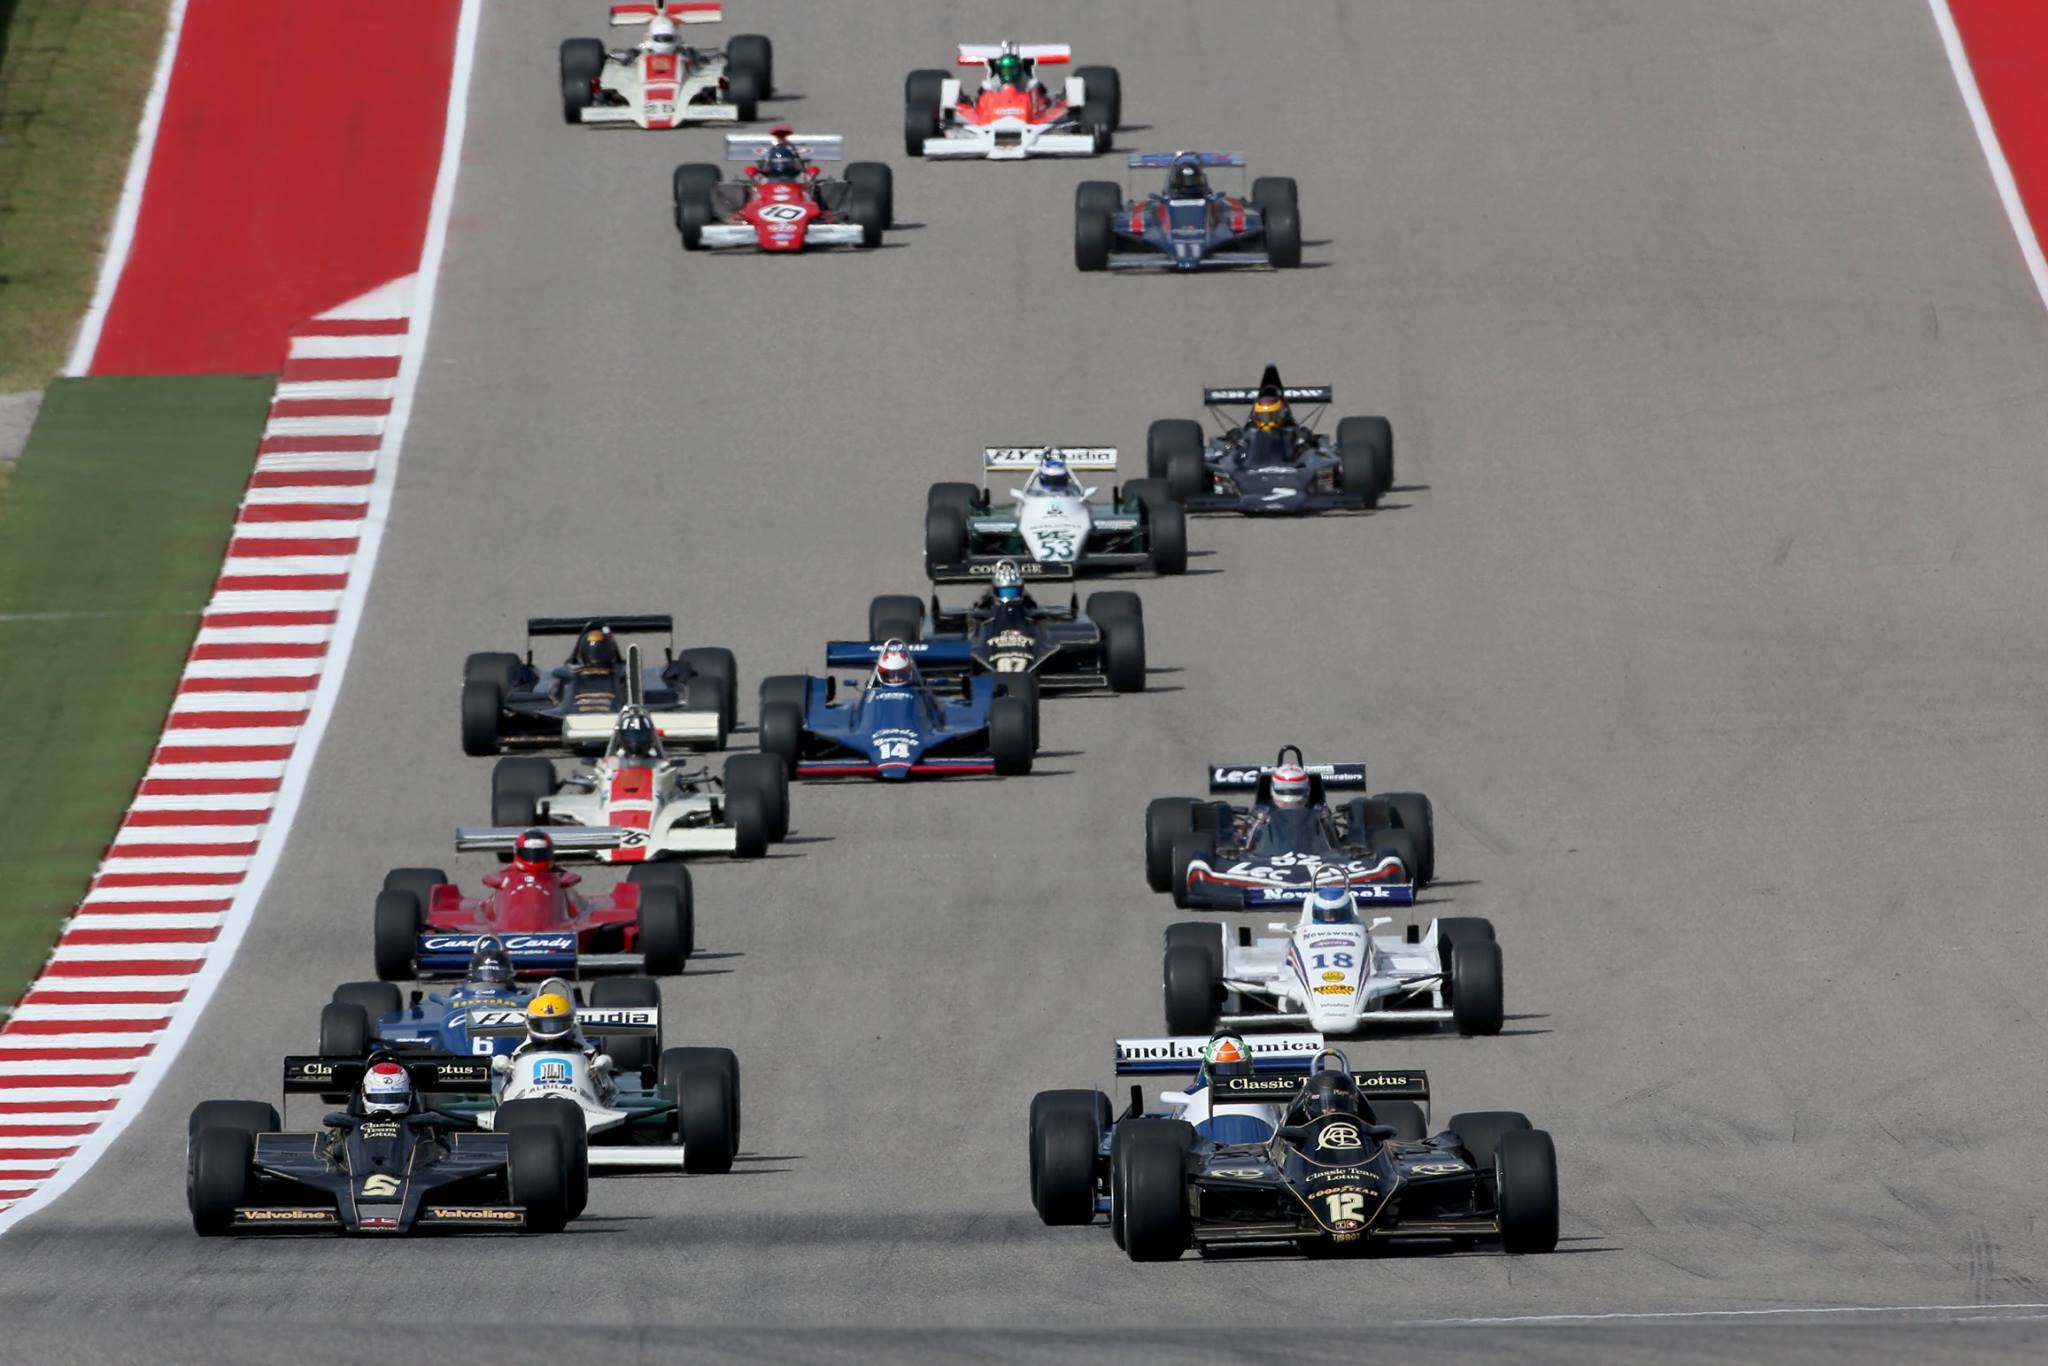 Classic Team Lotus drivers enjoy winning in Austin and Estoril